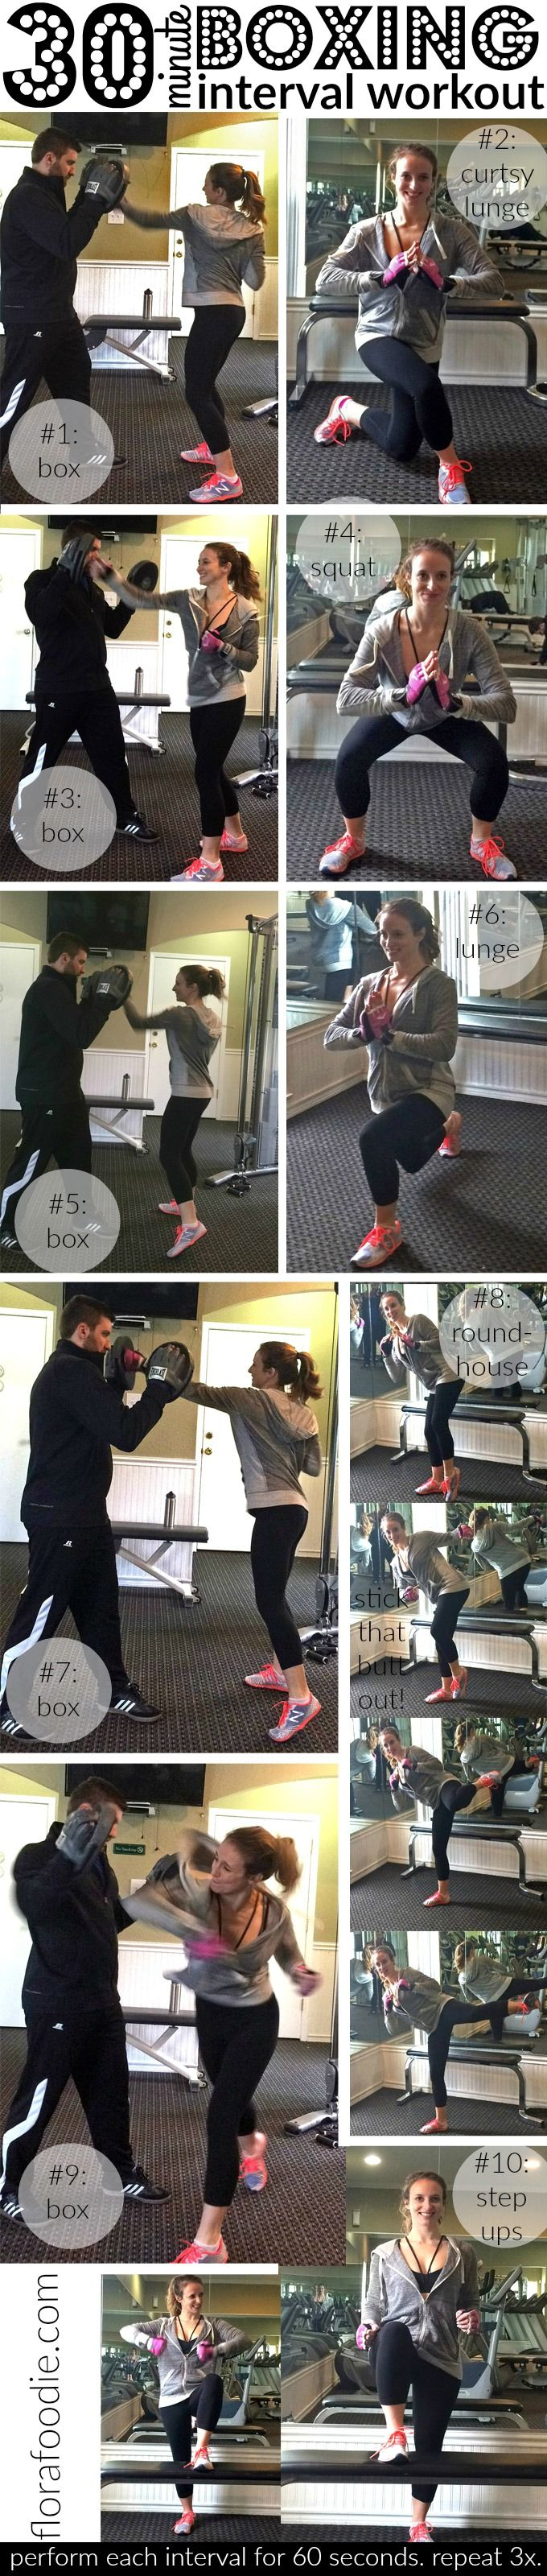 Boxing Interval Workout | 30 Minutes for a full-body cardio and resistance training workout you'll LOVE! {florafoodie.com}